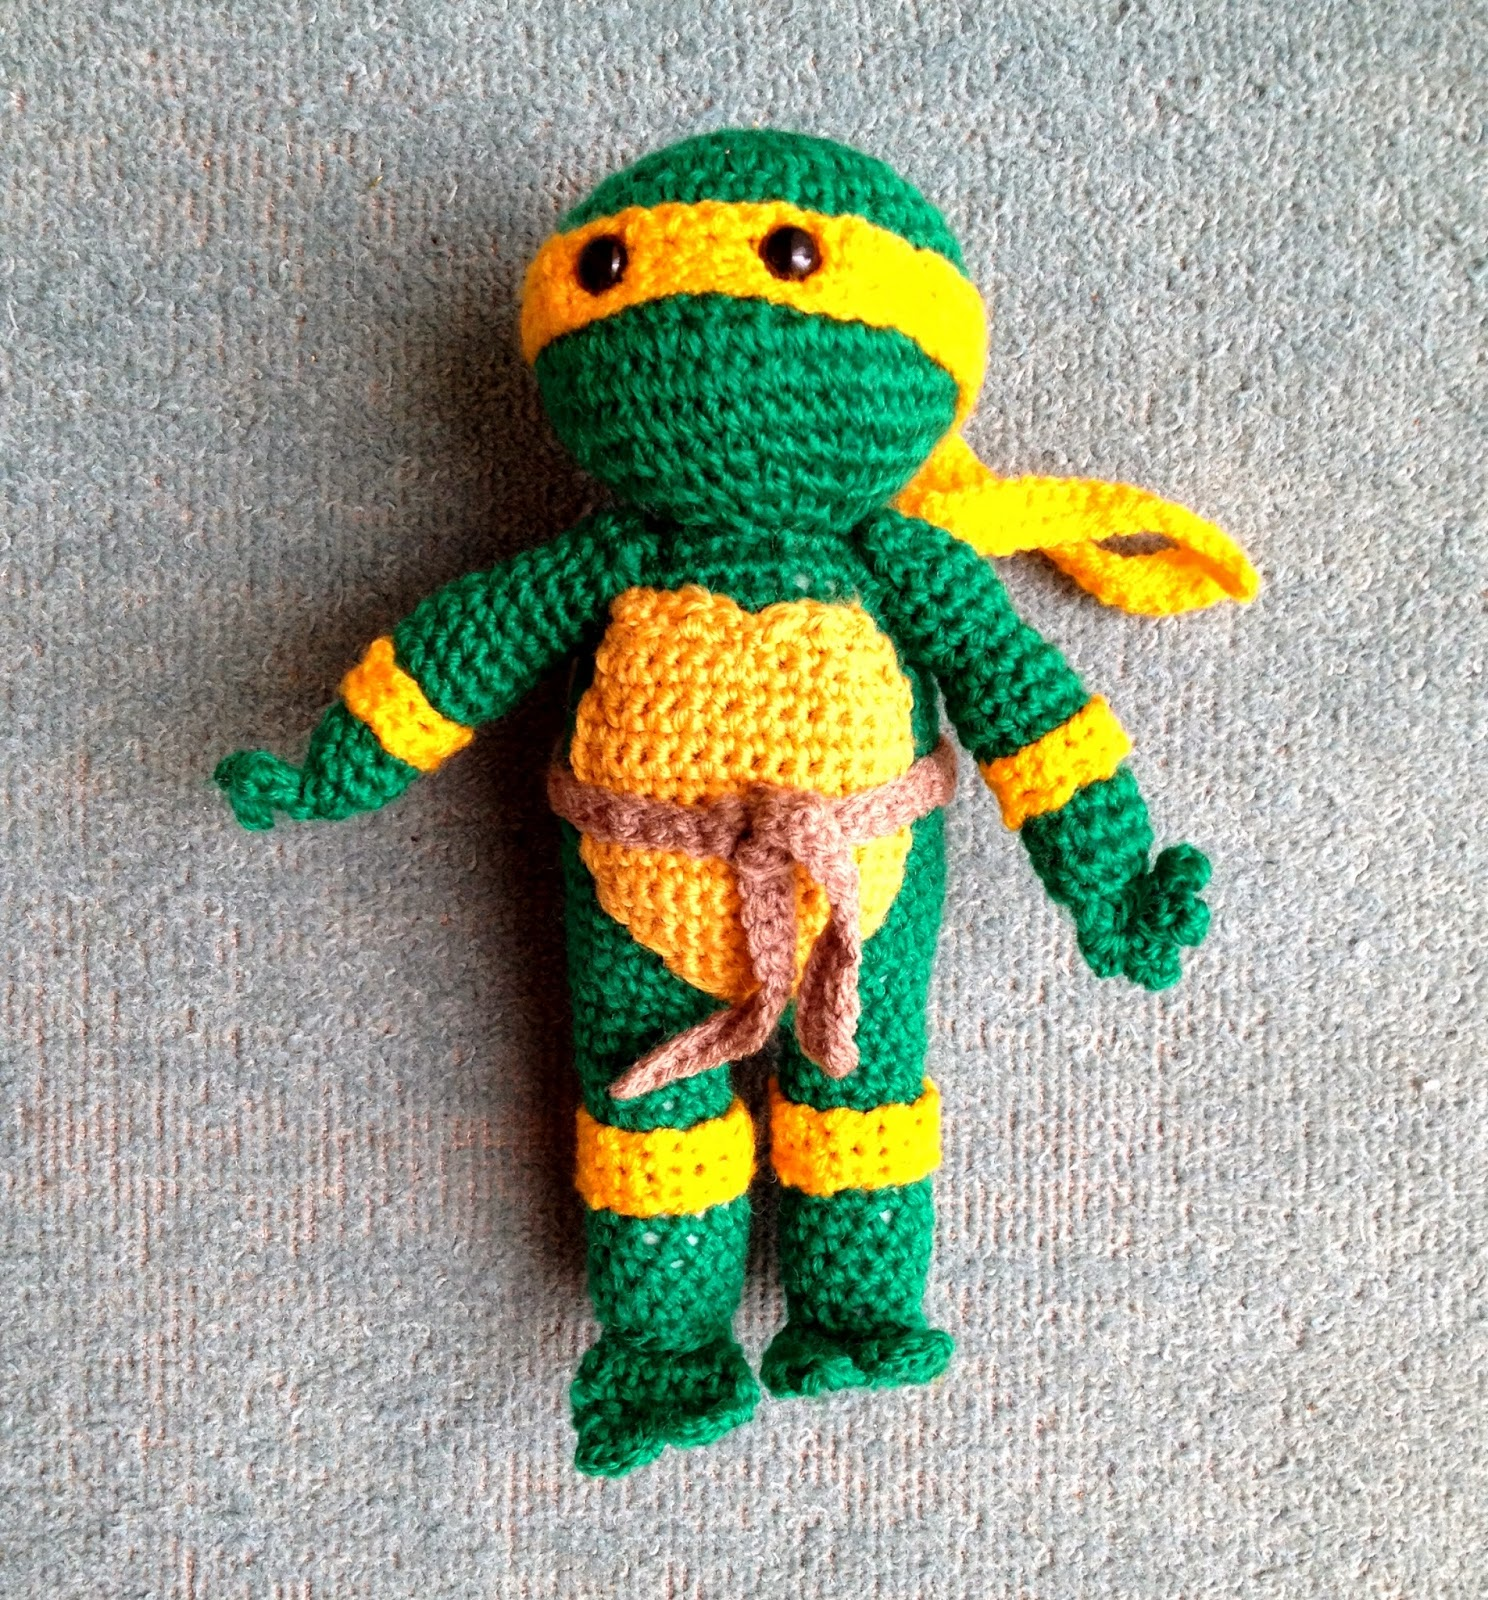 Amigurumi Teenage Mutant Ninja Turtle - Free Crochet Pattern ... | 1600x1488